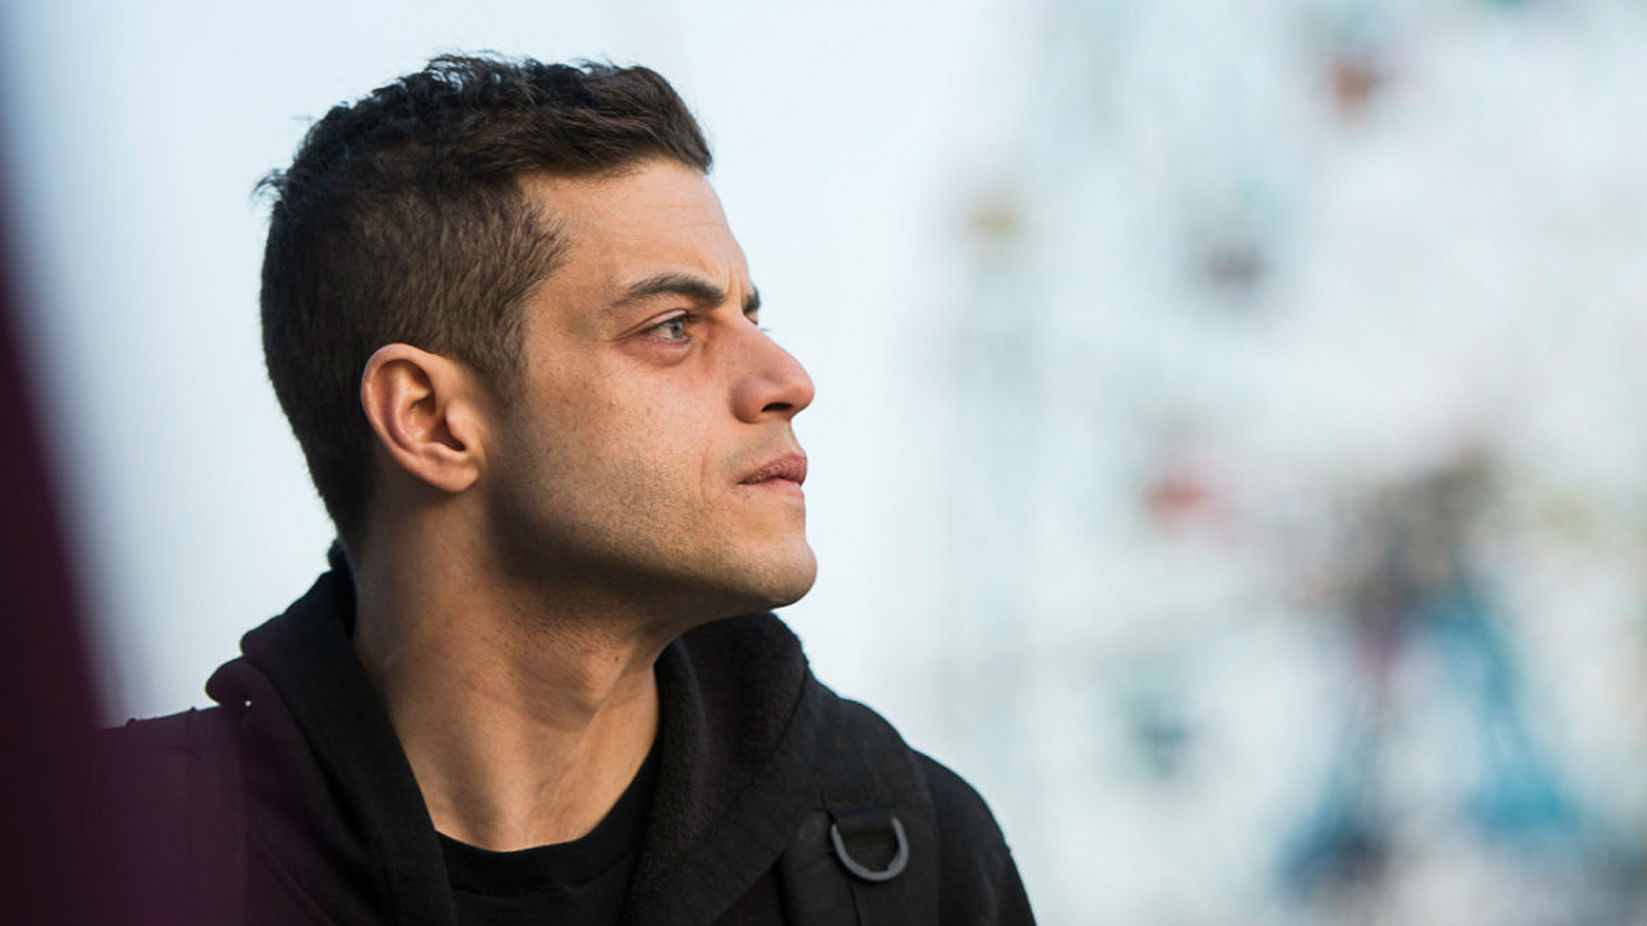 Rami Malek, Aziz Ansari Put Immigration Debate in Emmy Award Spotlight 1